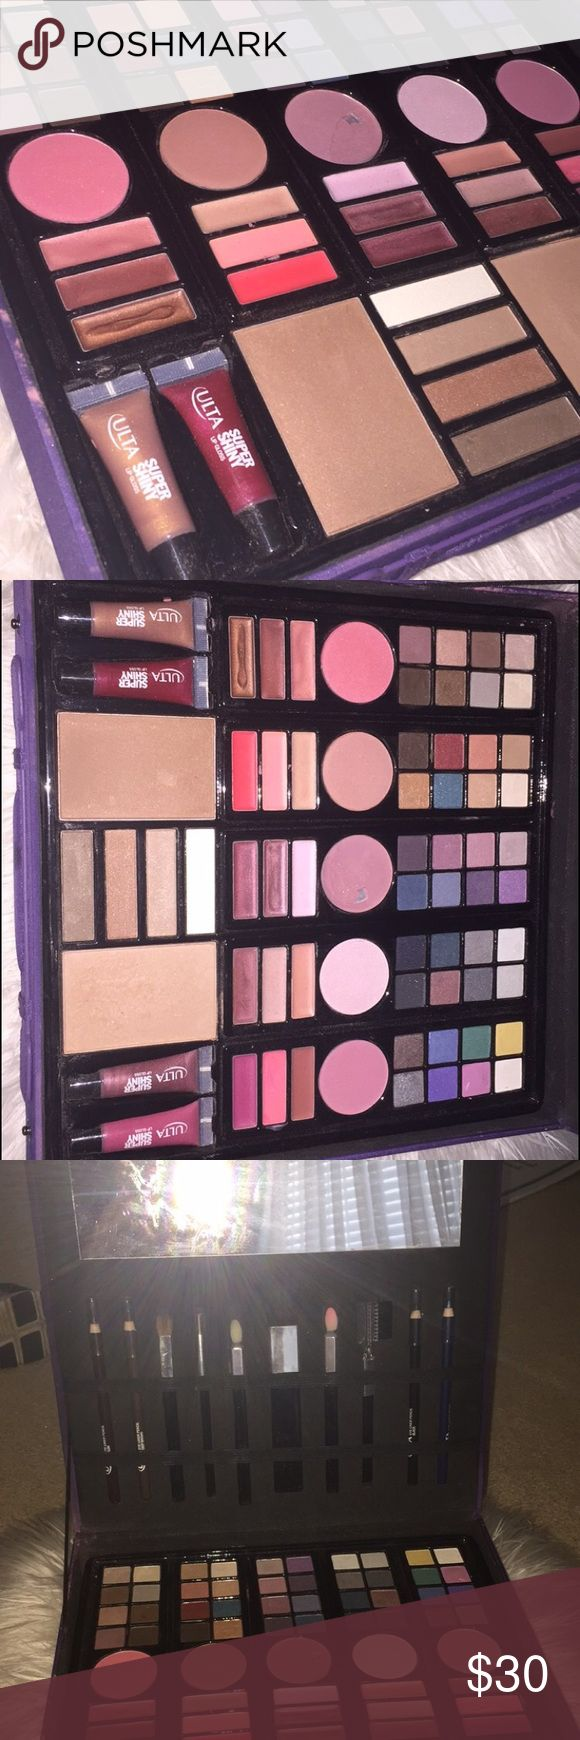 Ulta purple make up kit Make up slightly used includes eyeshadows, blushes, bronzers, lip glosses, eye liner pencils, brushes and highlighter. Brushes and some eye pencils have been used makeup that has been used Is visible in photos ULTA Makeup